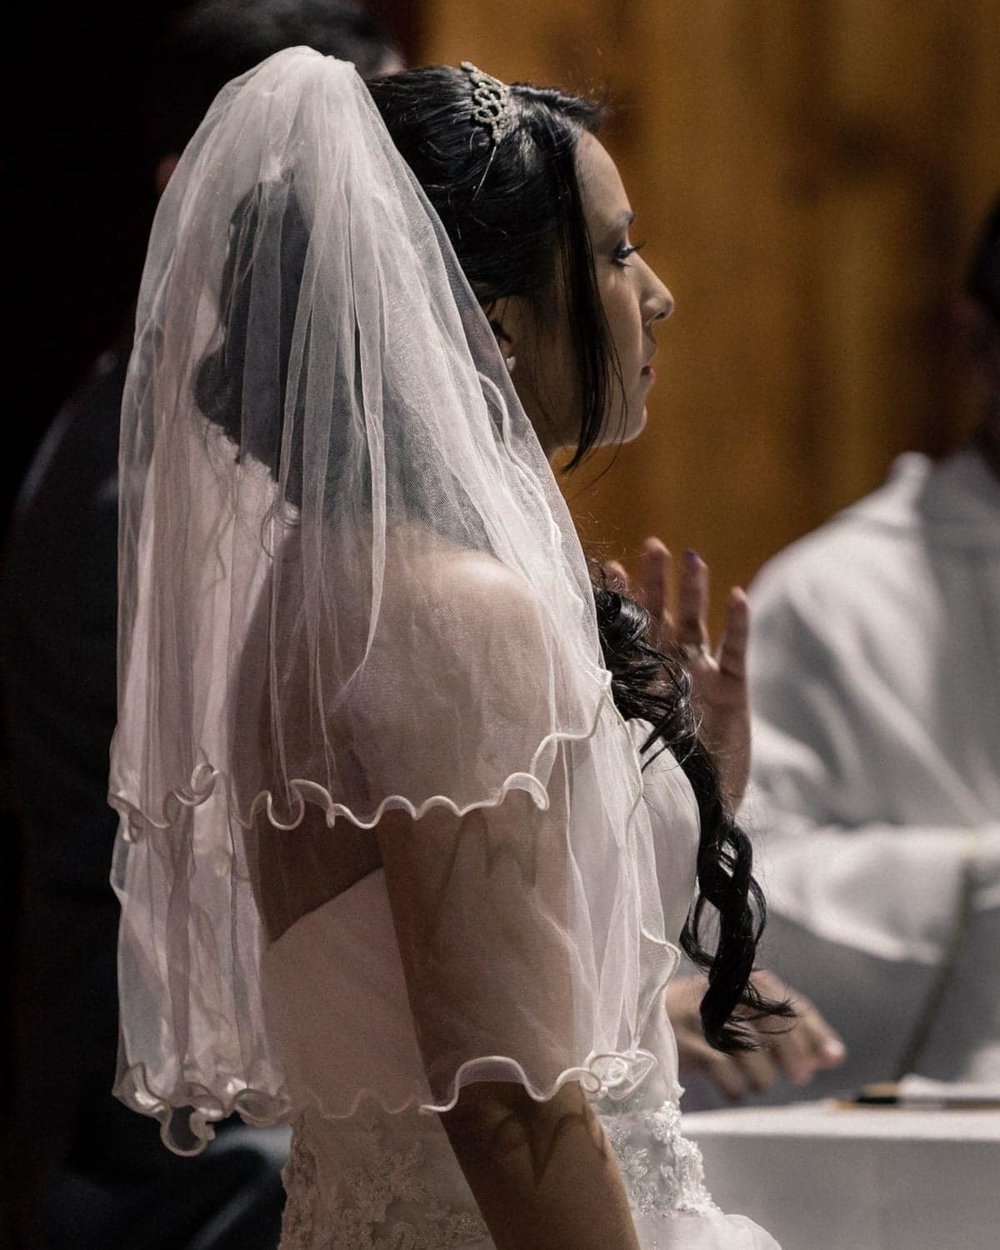 Bride wearing white veil stands patiently during signing ceremony.